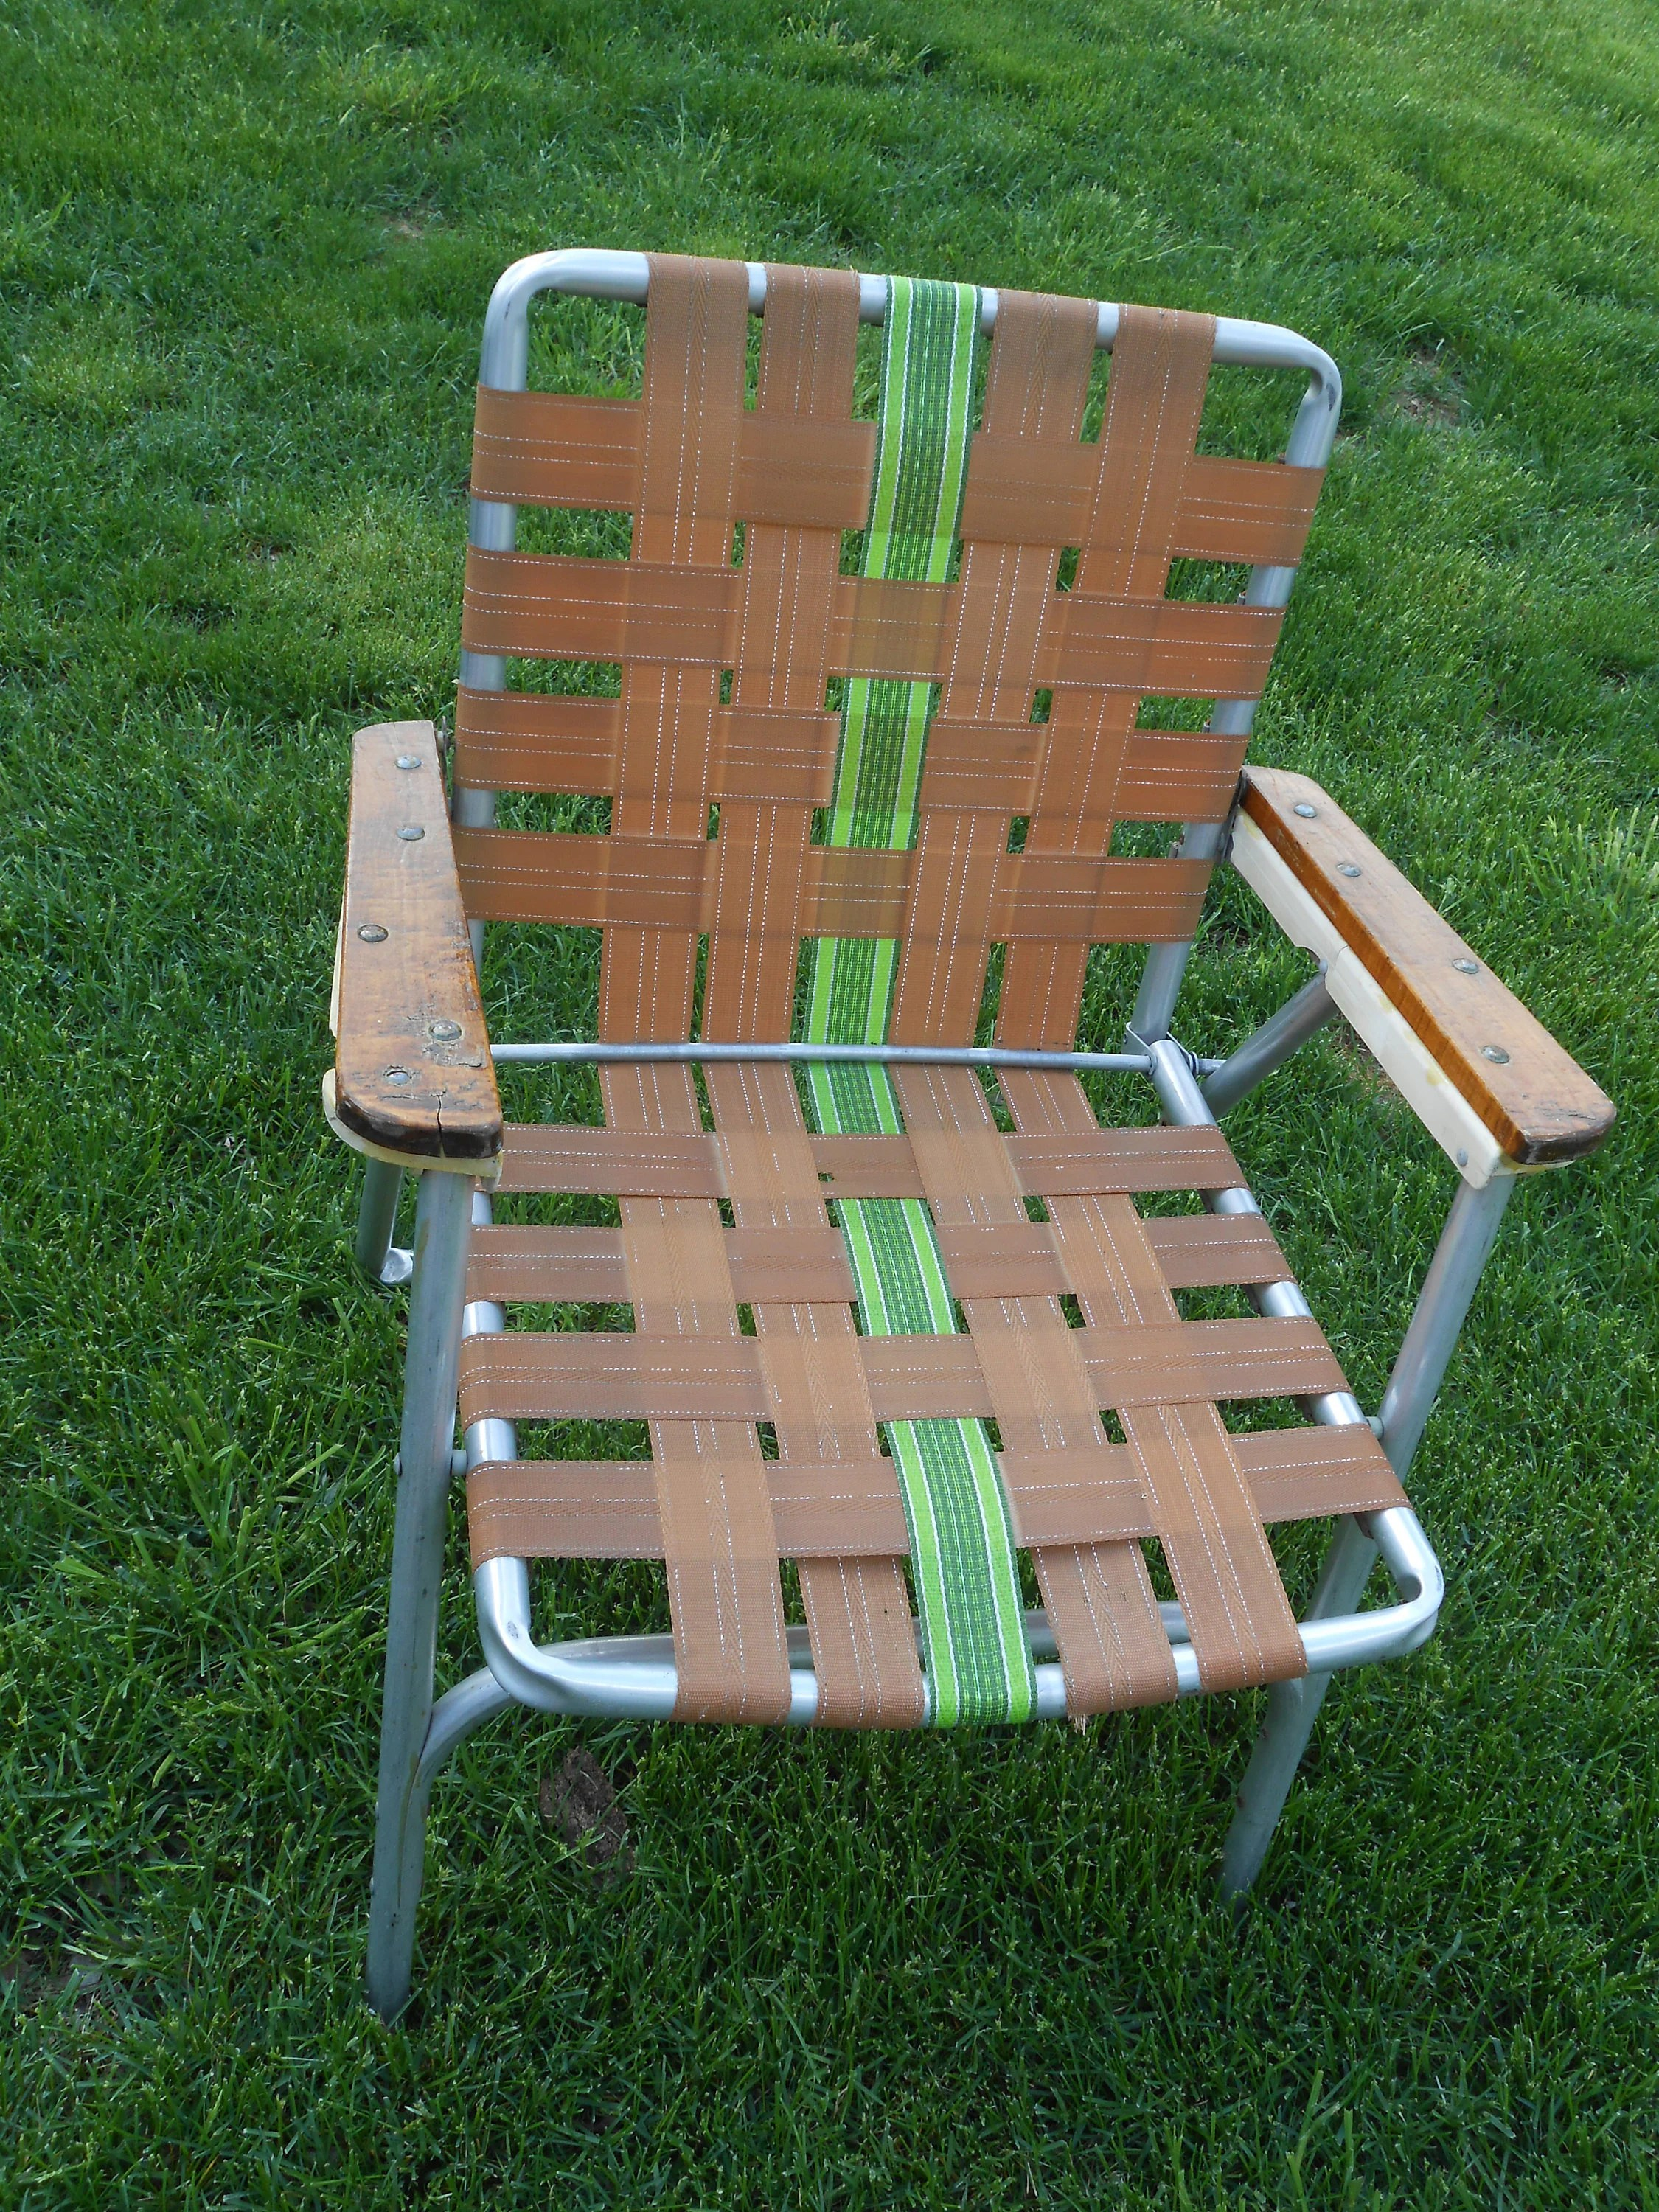 webbed folding lawn chairs spiderman table and retro vintage outdoor chair aluminum 50s etsy image 0